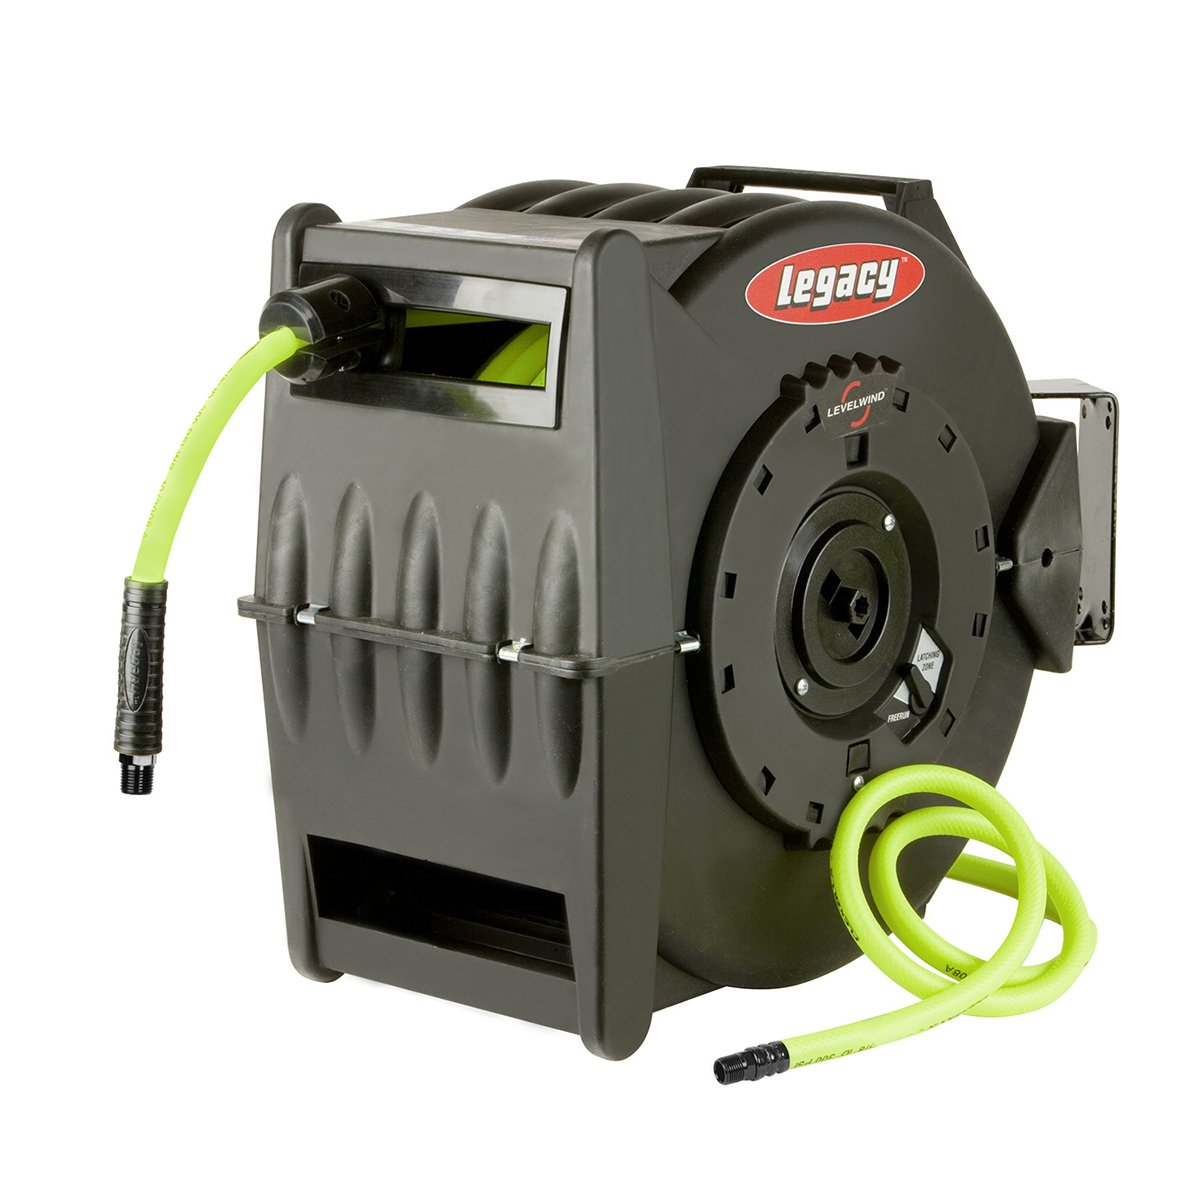 Flexzilla Levelwind Retractable Air Hose Reel, 1/2 in. x 50 ft., Heavy Duty, Lightweight, Hybrid, ZillaGreen - L8335FZ